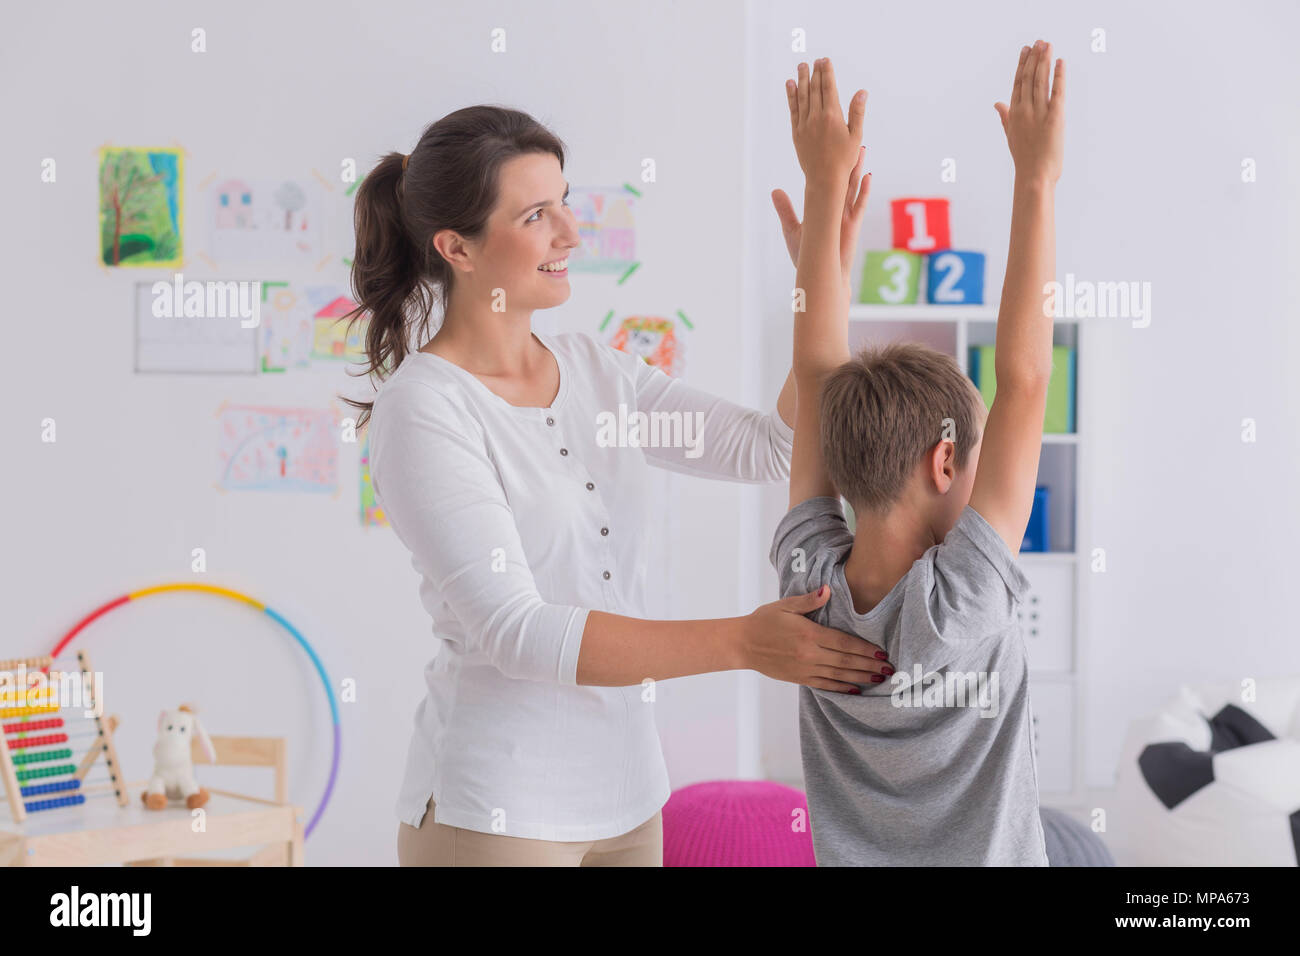 Shot of a friendly physiotherapist exercising with her little patient - Stock Image